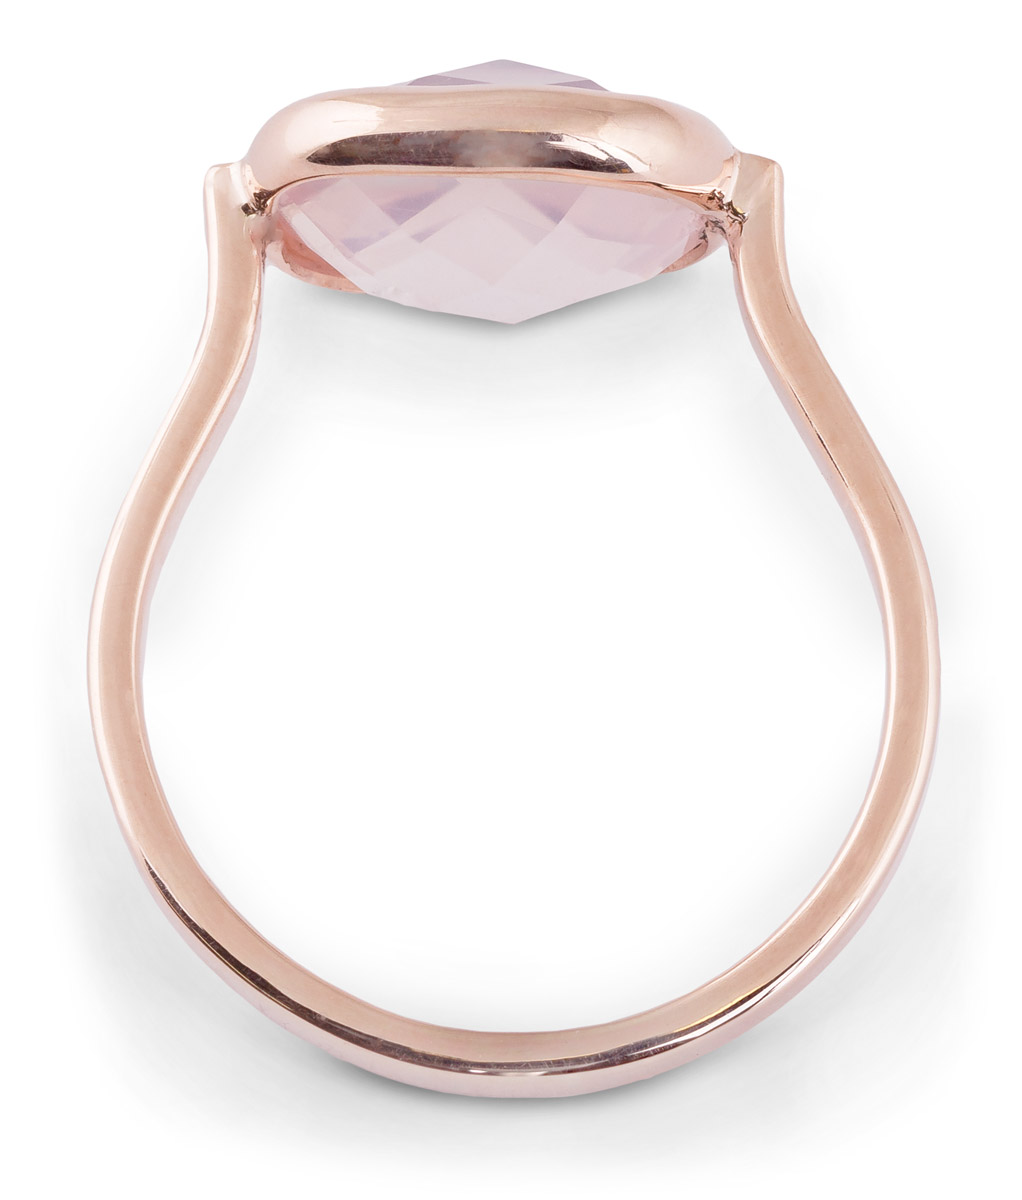 Rose Quartz Cushion Bezel Ring - Top